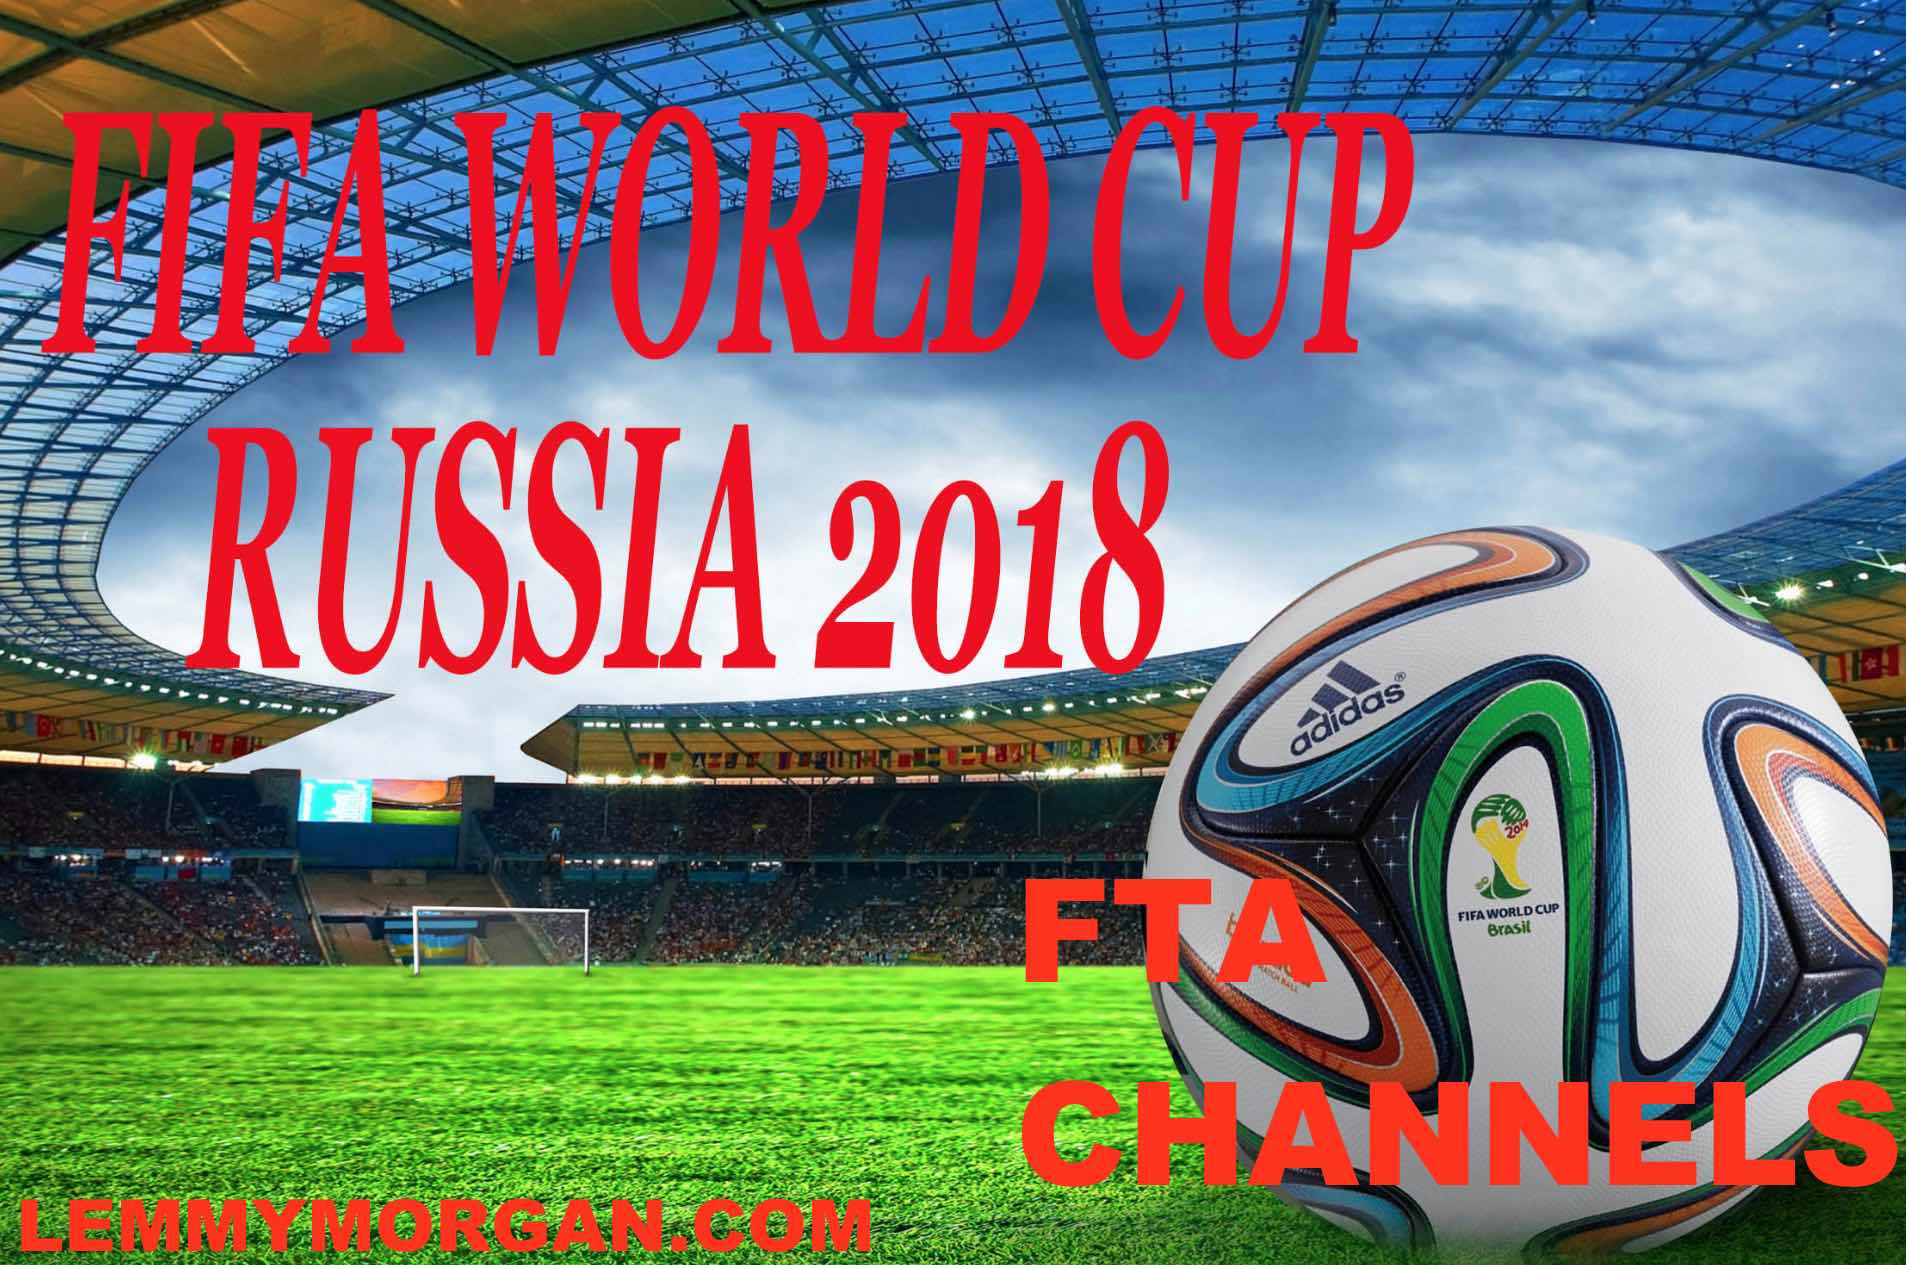 FIFA World cup Russia 2018 100% Free to air channels and their frequencies